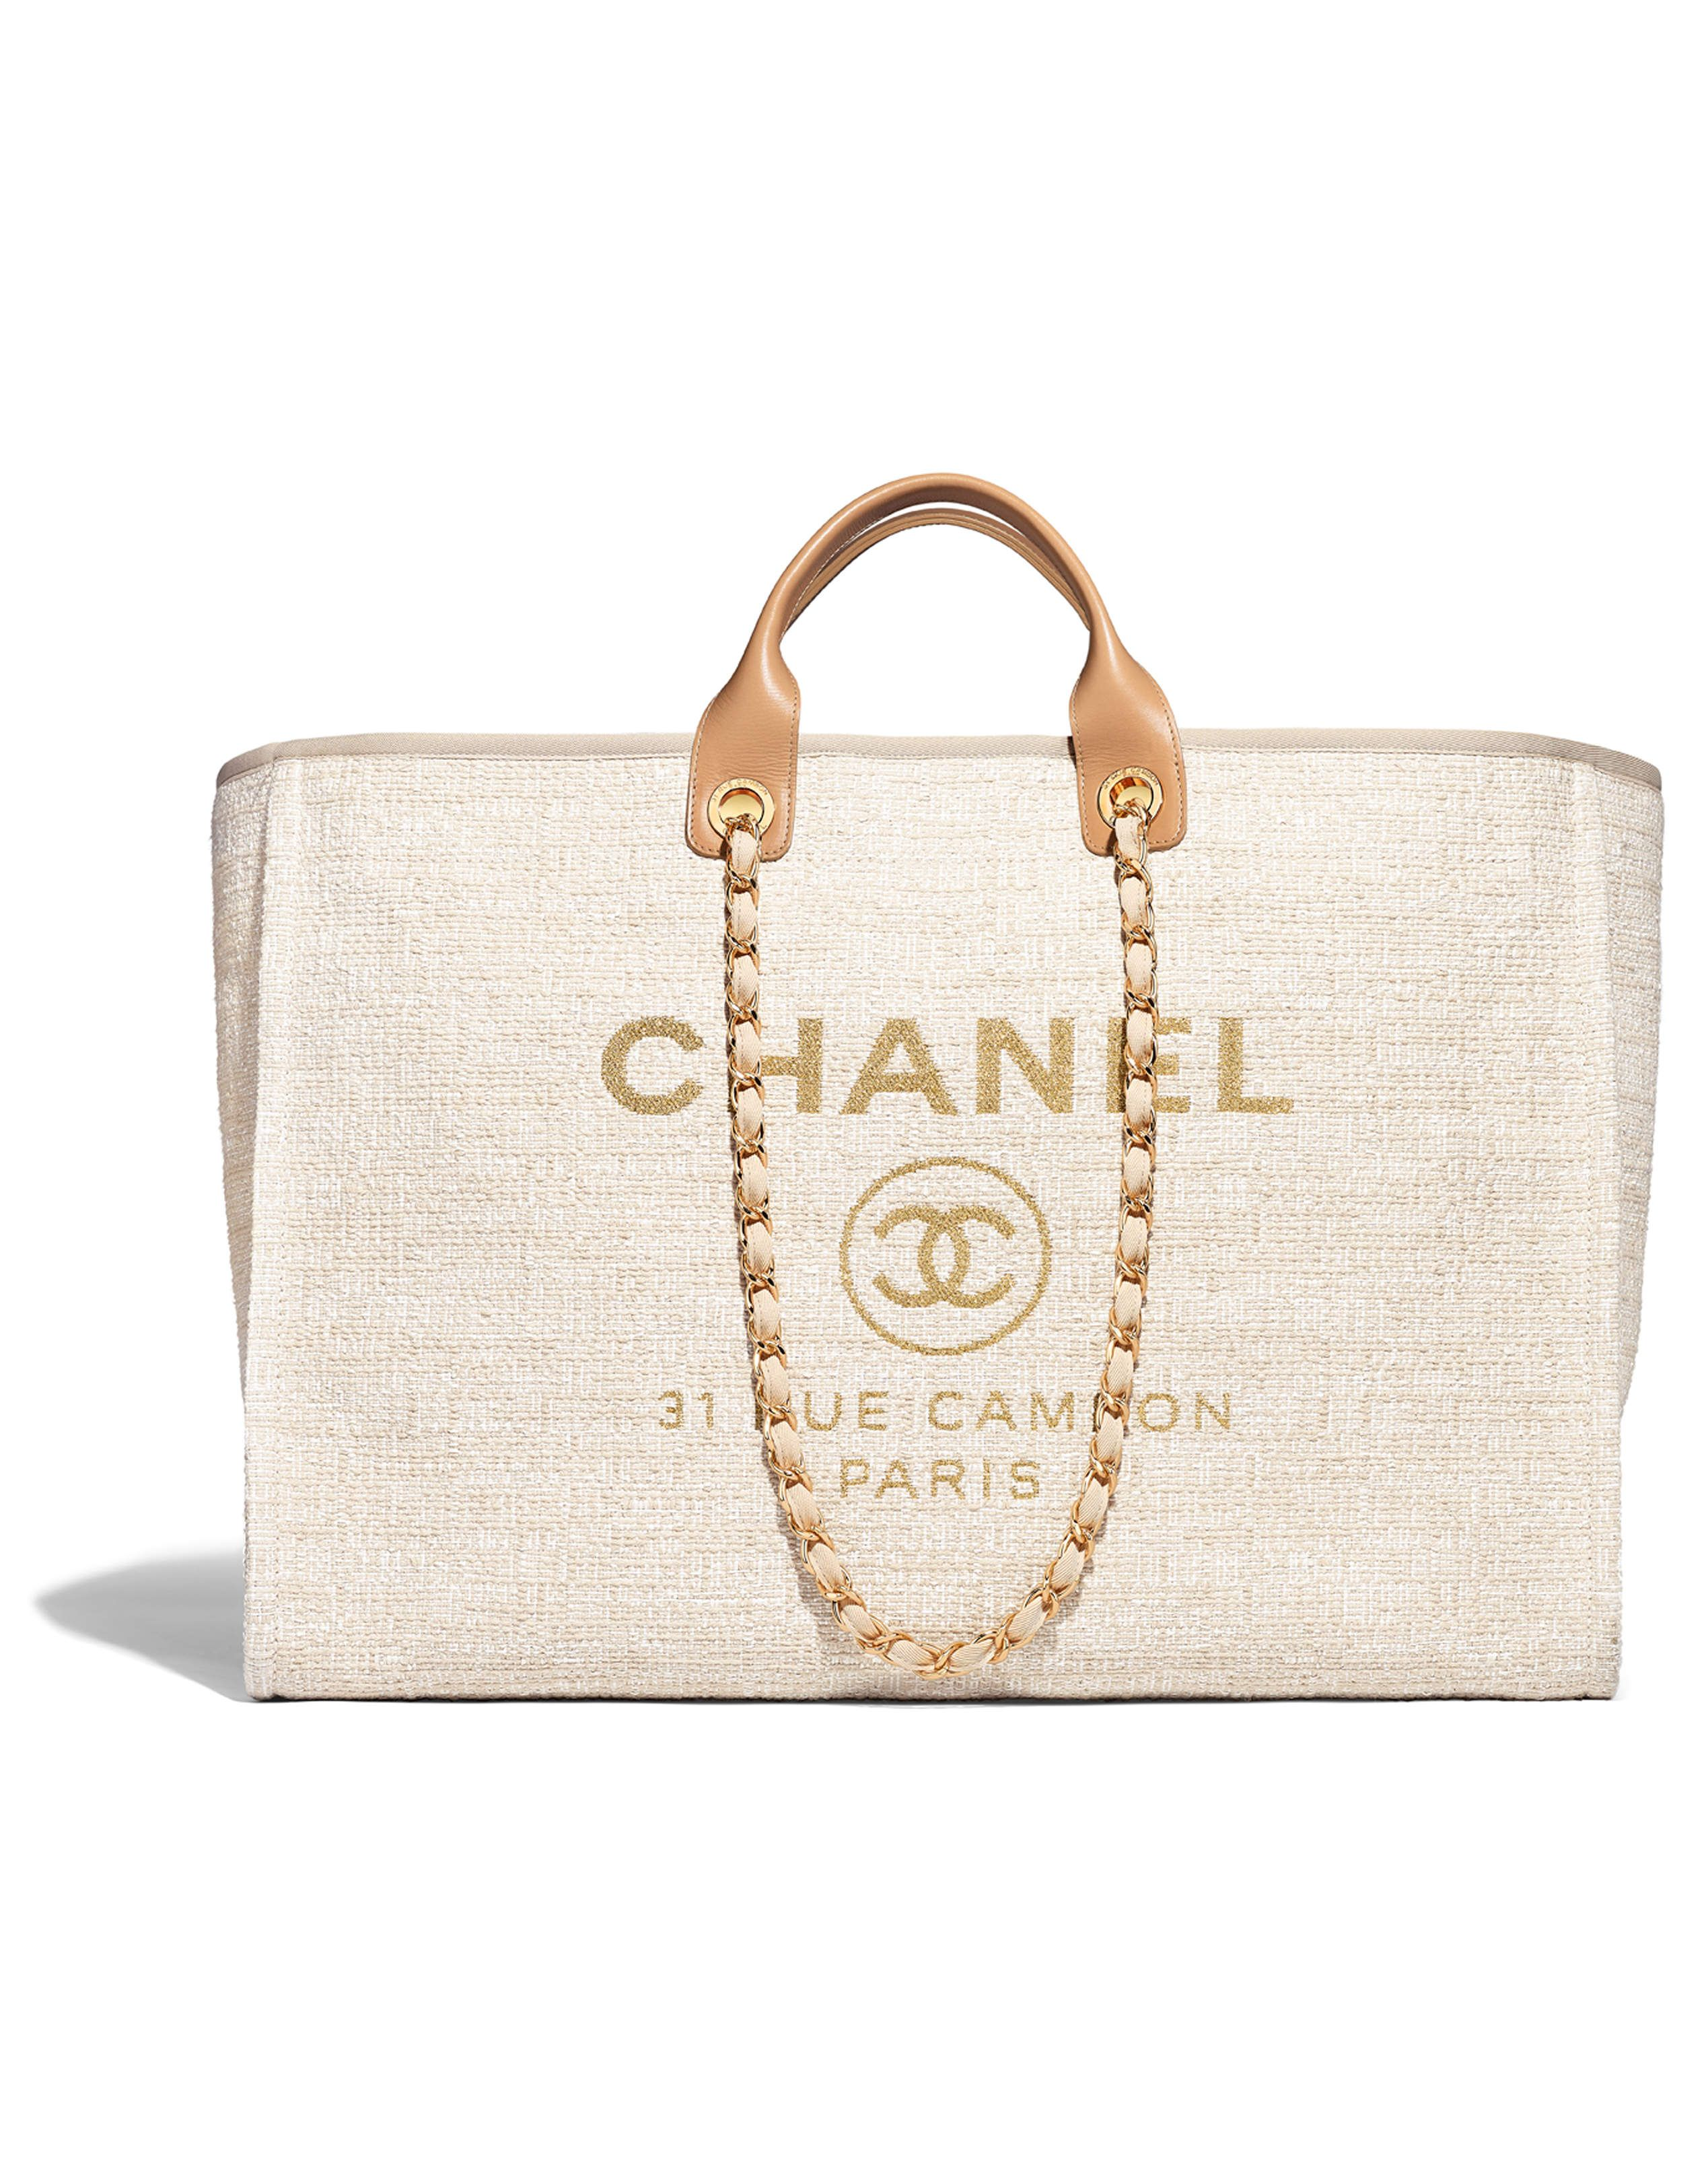 08d6fd115 Chanel - Cruise 2017/2018 | Large canvas shopping bag | Style in ...